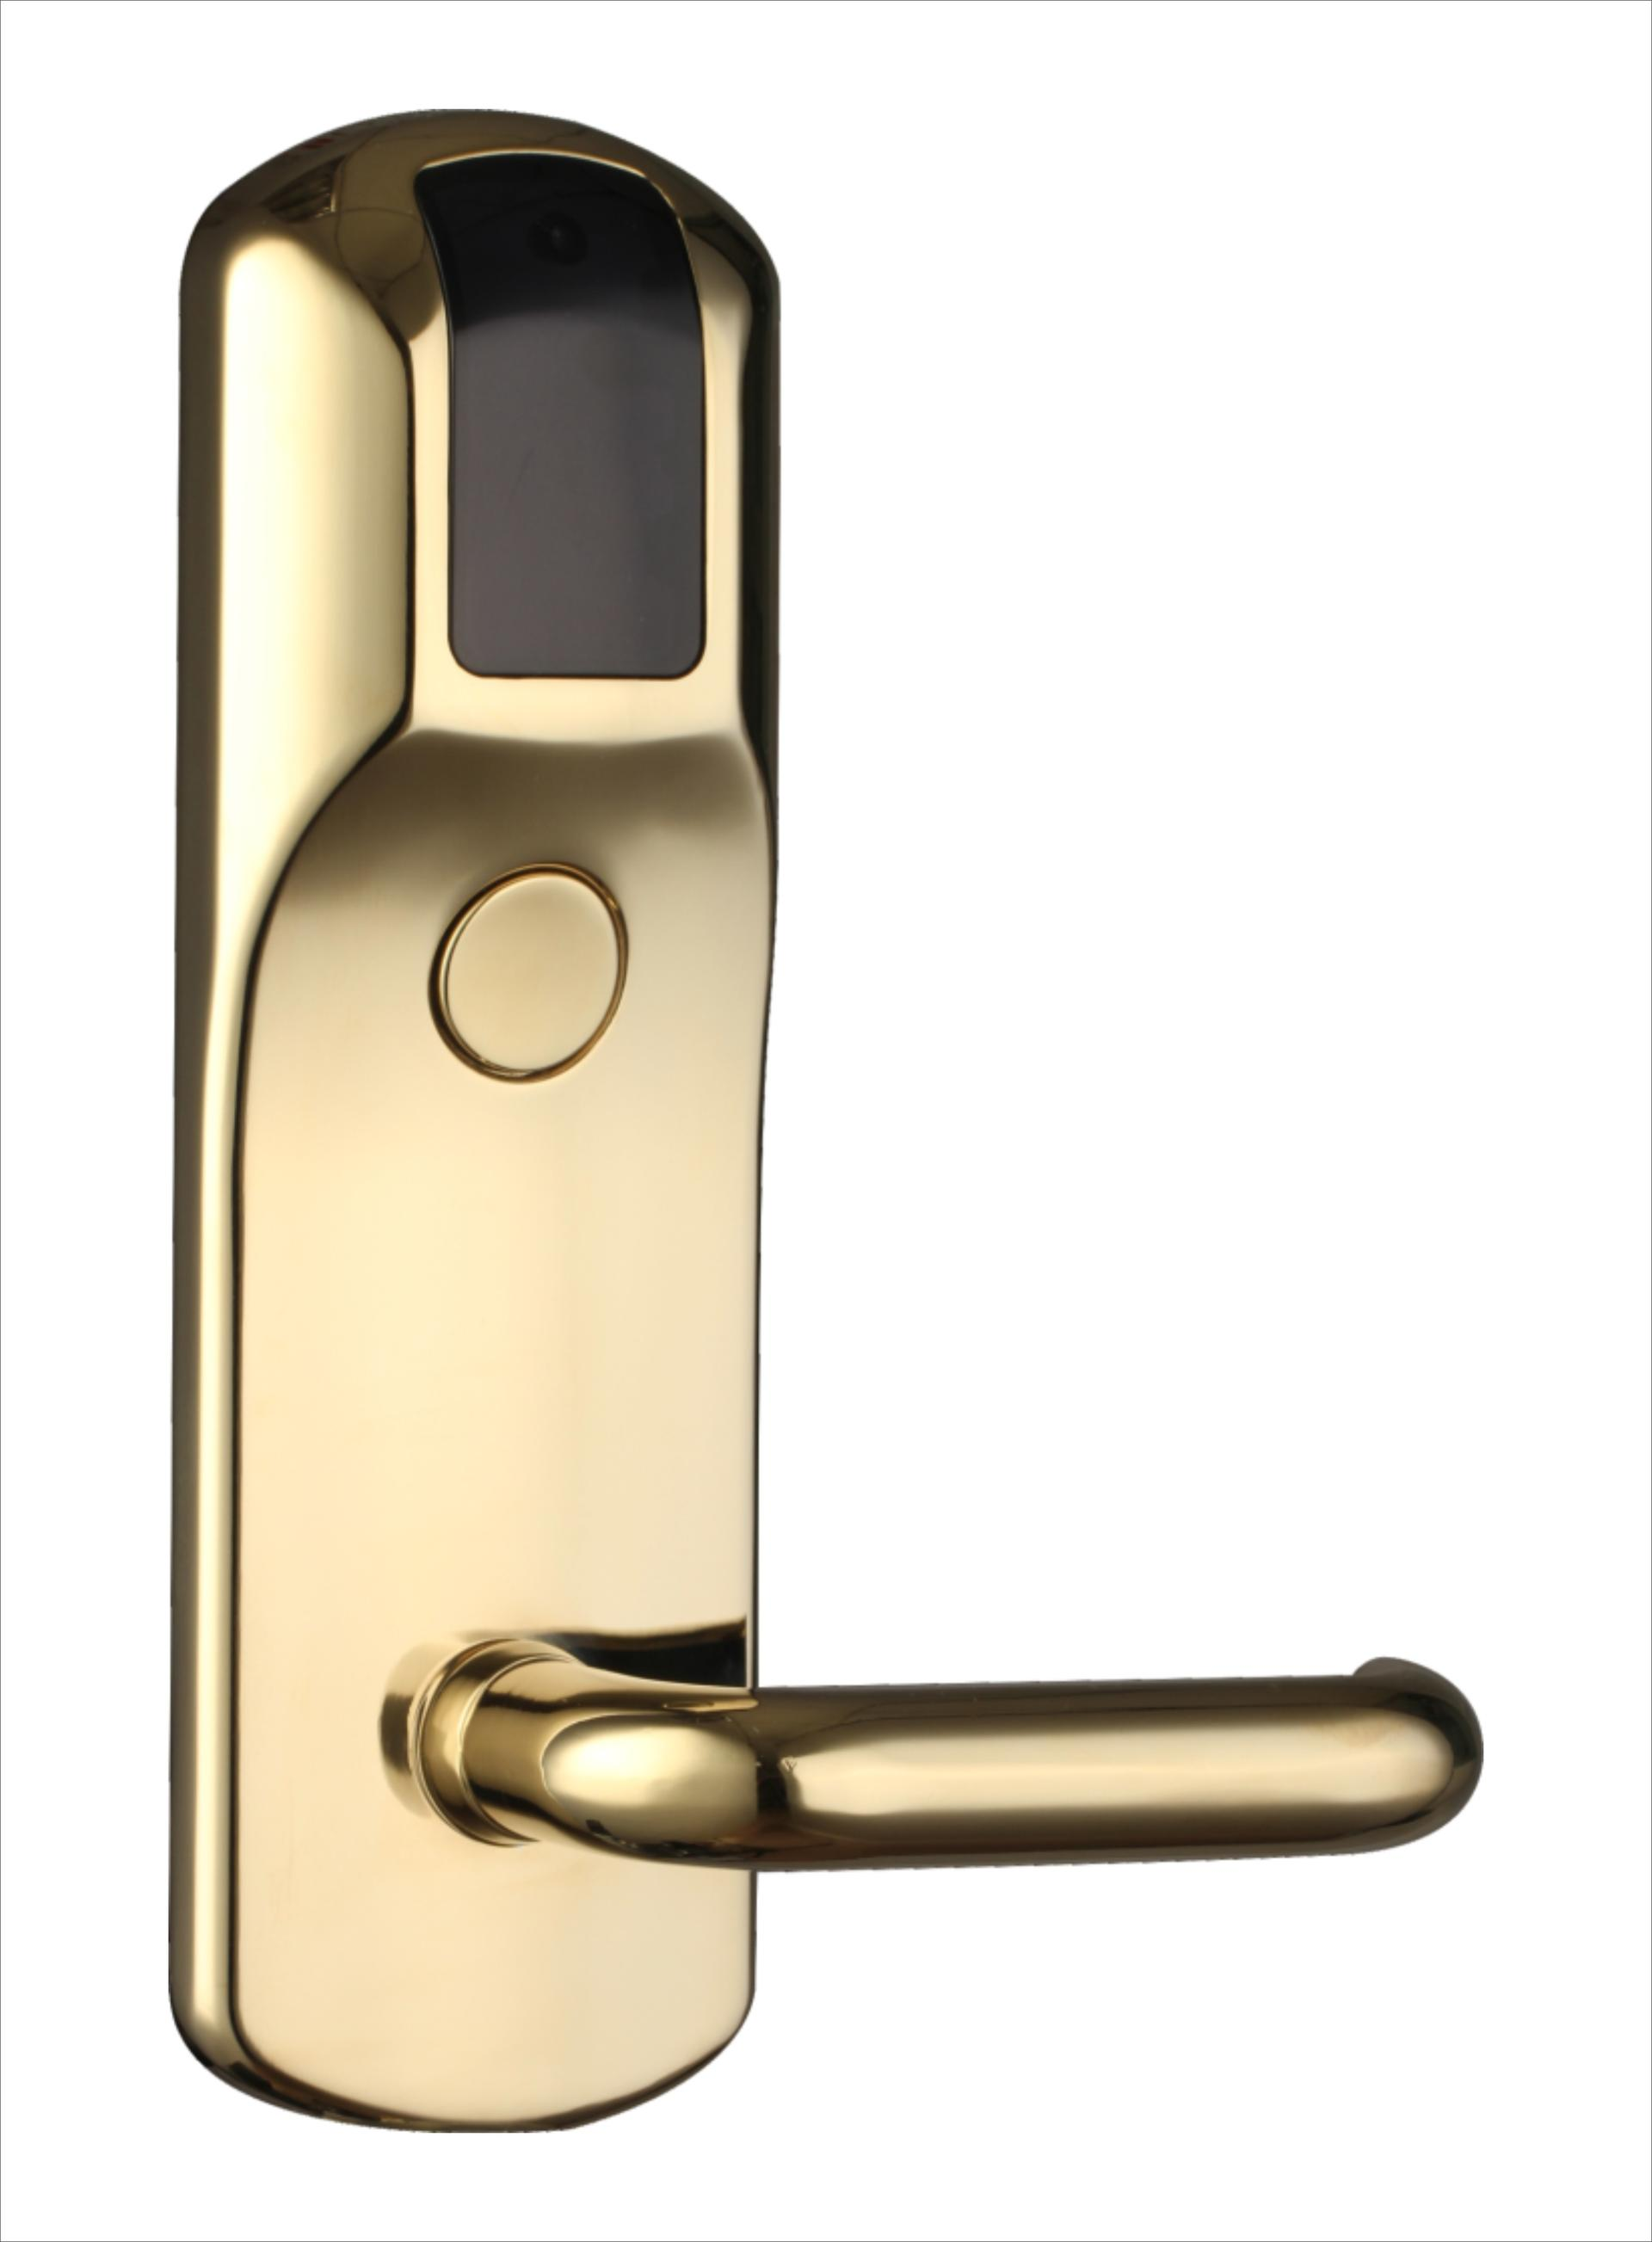 Door lock Electronic security free system zinc alloy material OEM and ODM KB800